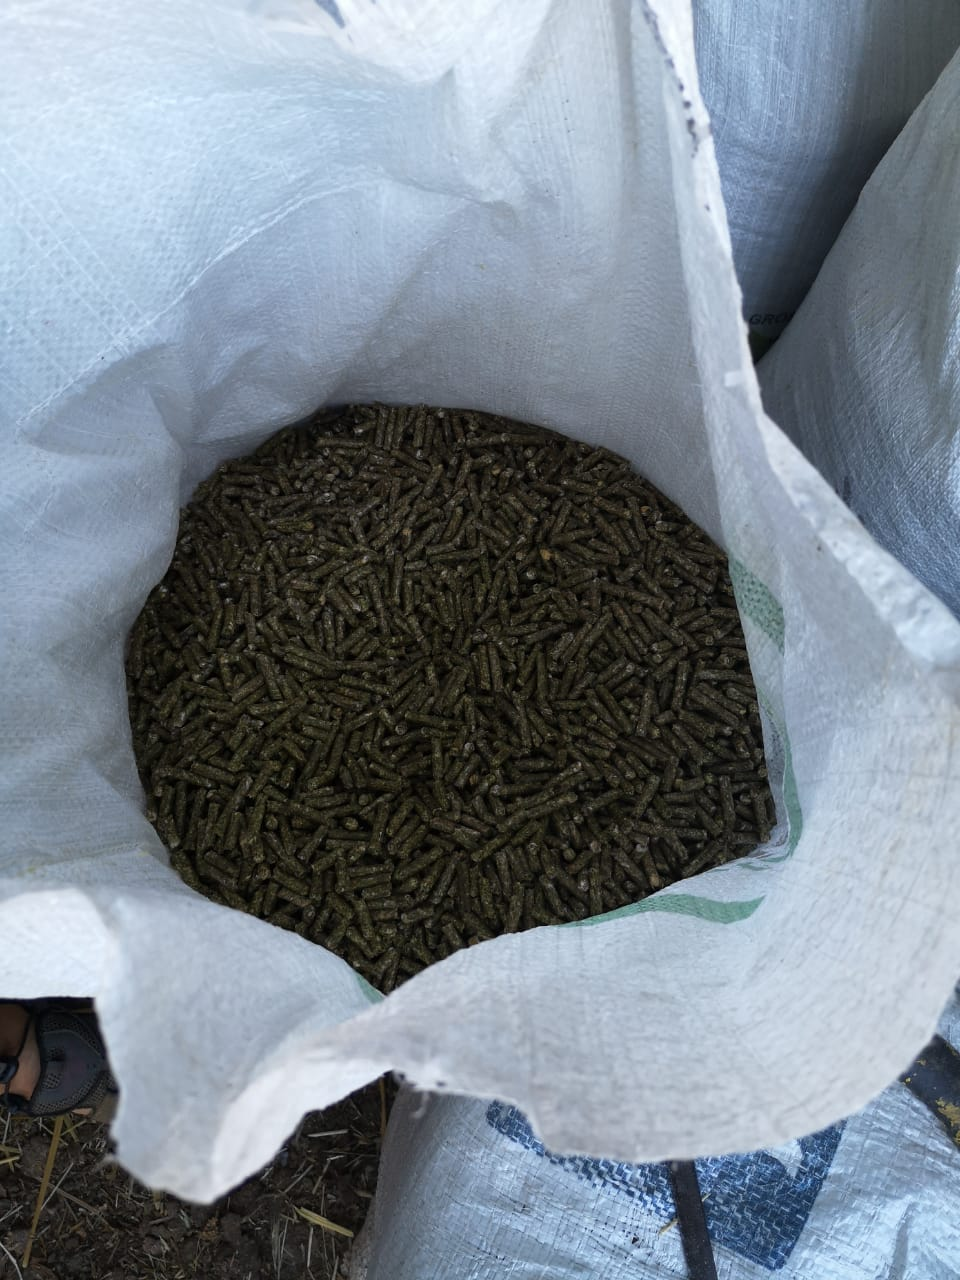 BEST QUALITY LUCERN PELLETS